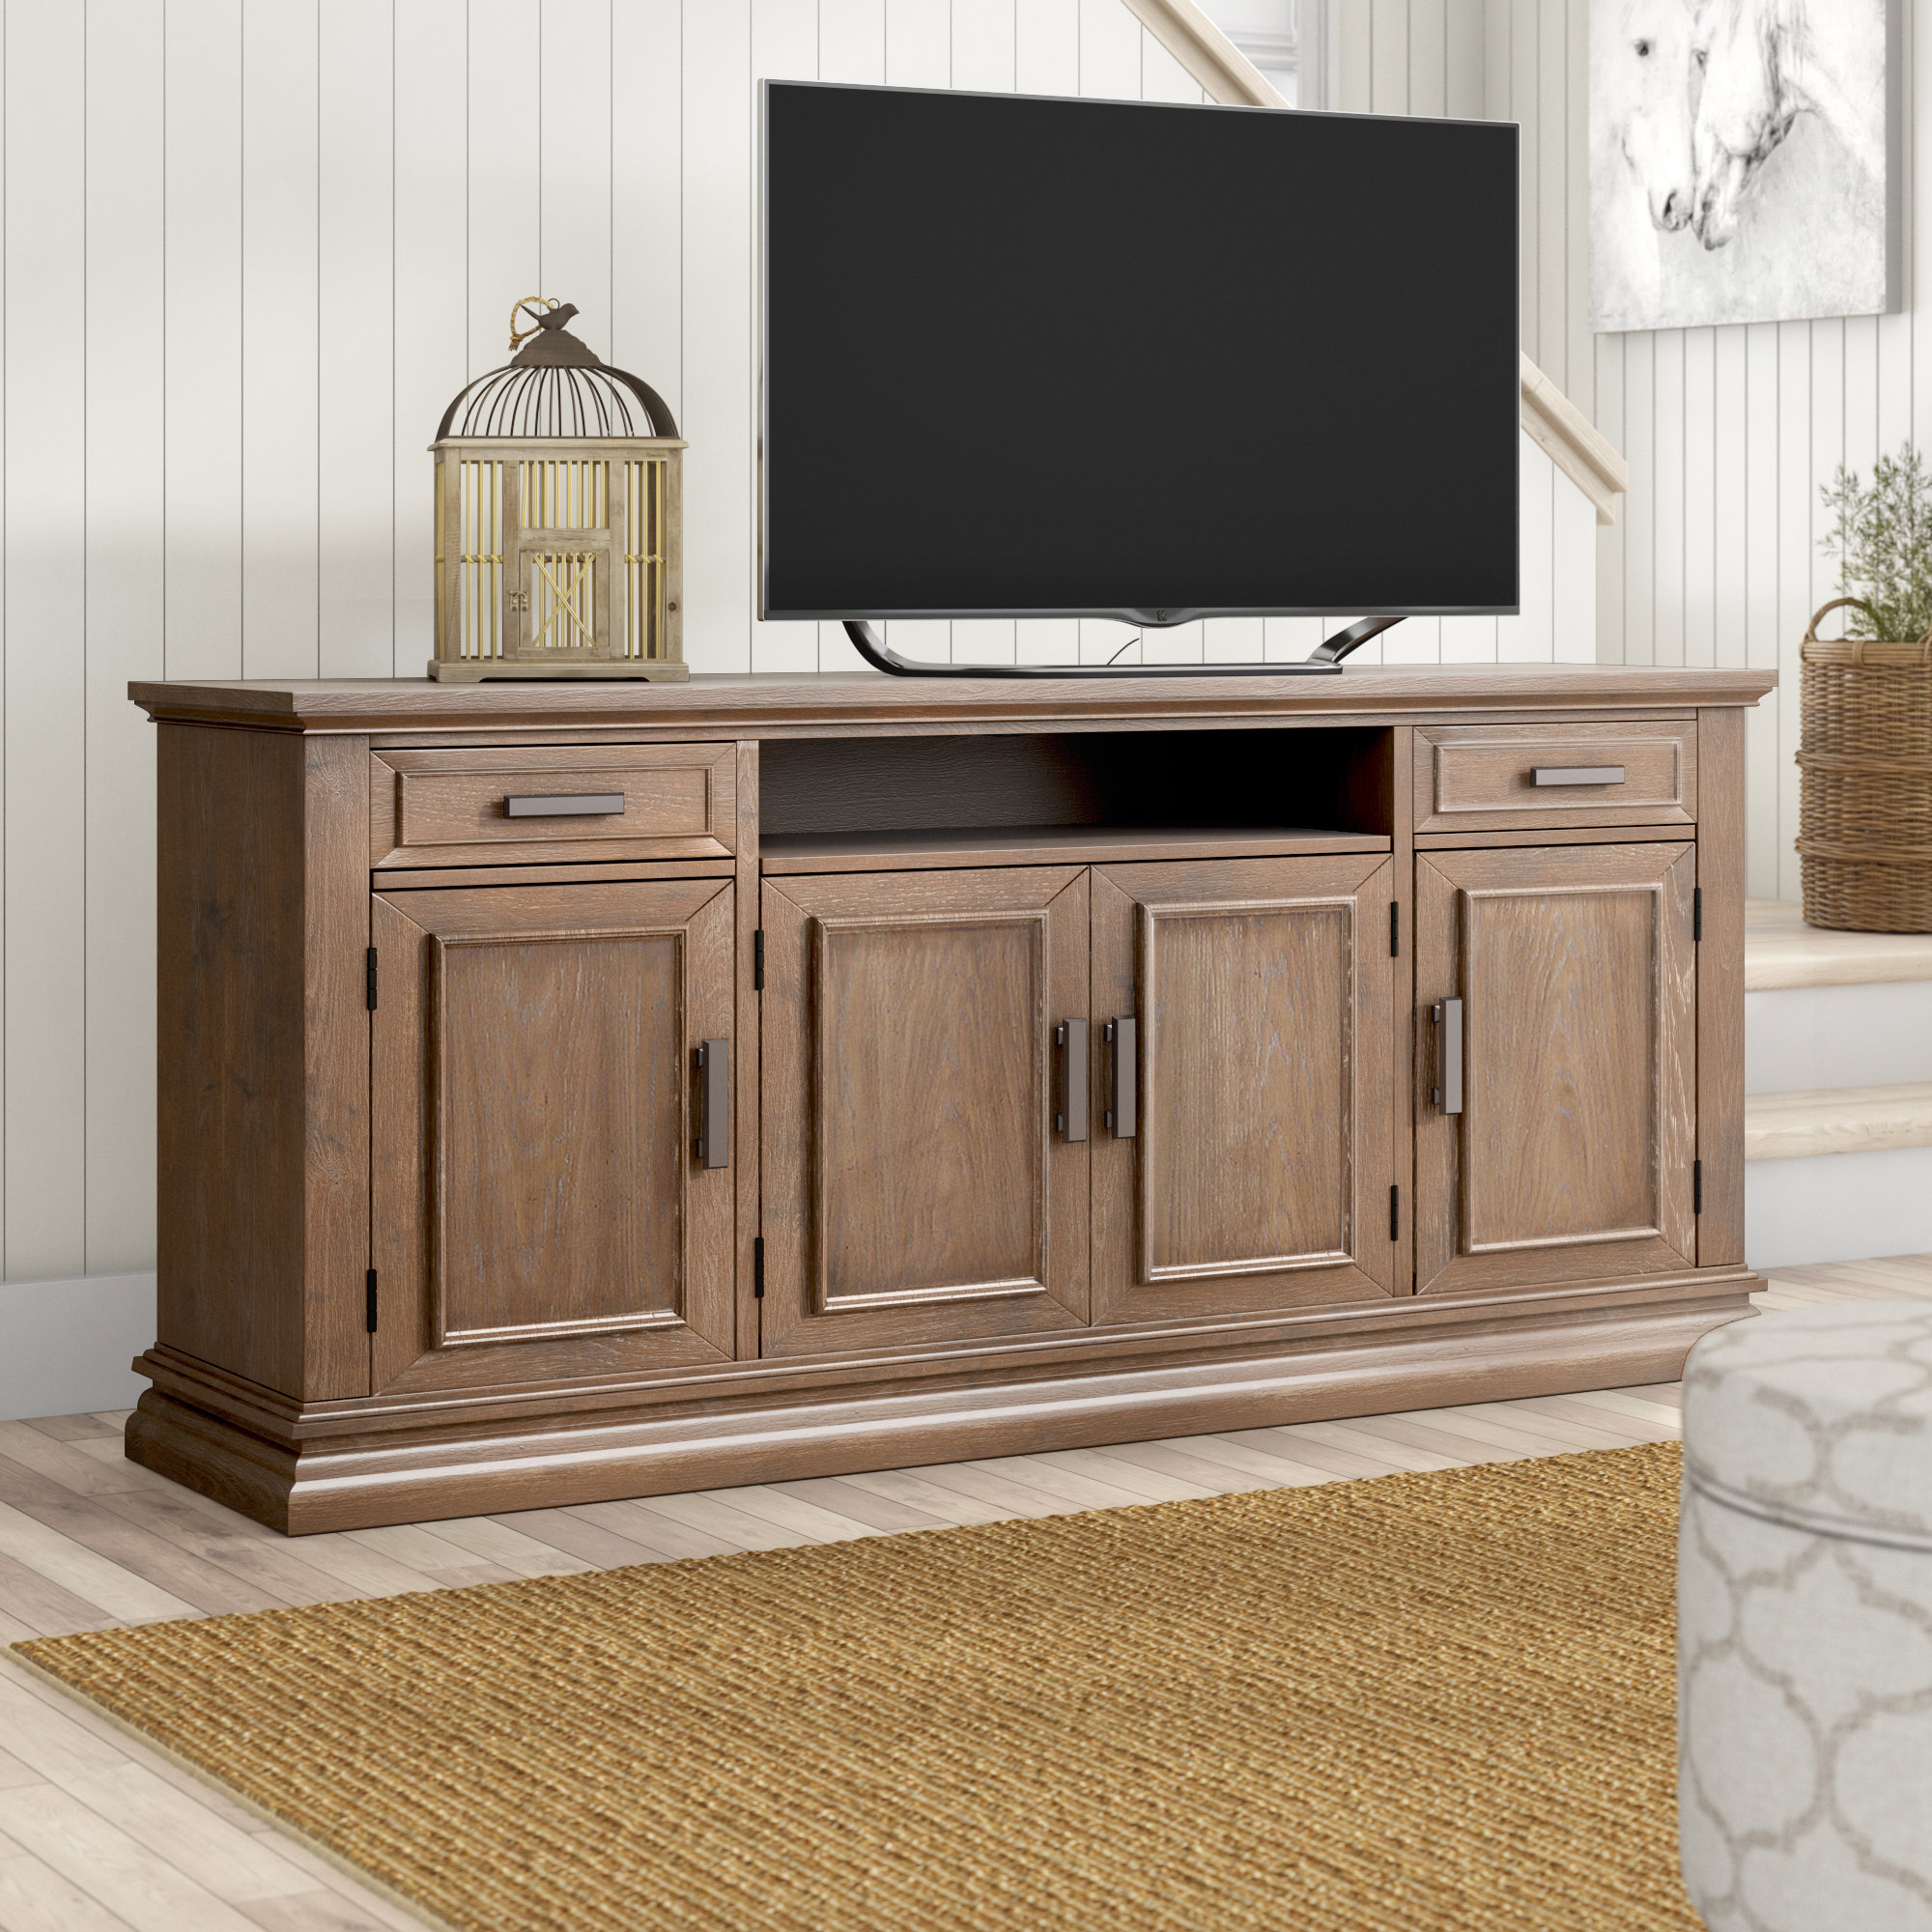 "Tv Stands | Joss & Main For Parmelee Tv Stands For Tvs Up To 65"" (View 9 of 20)"